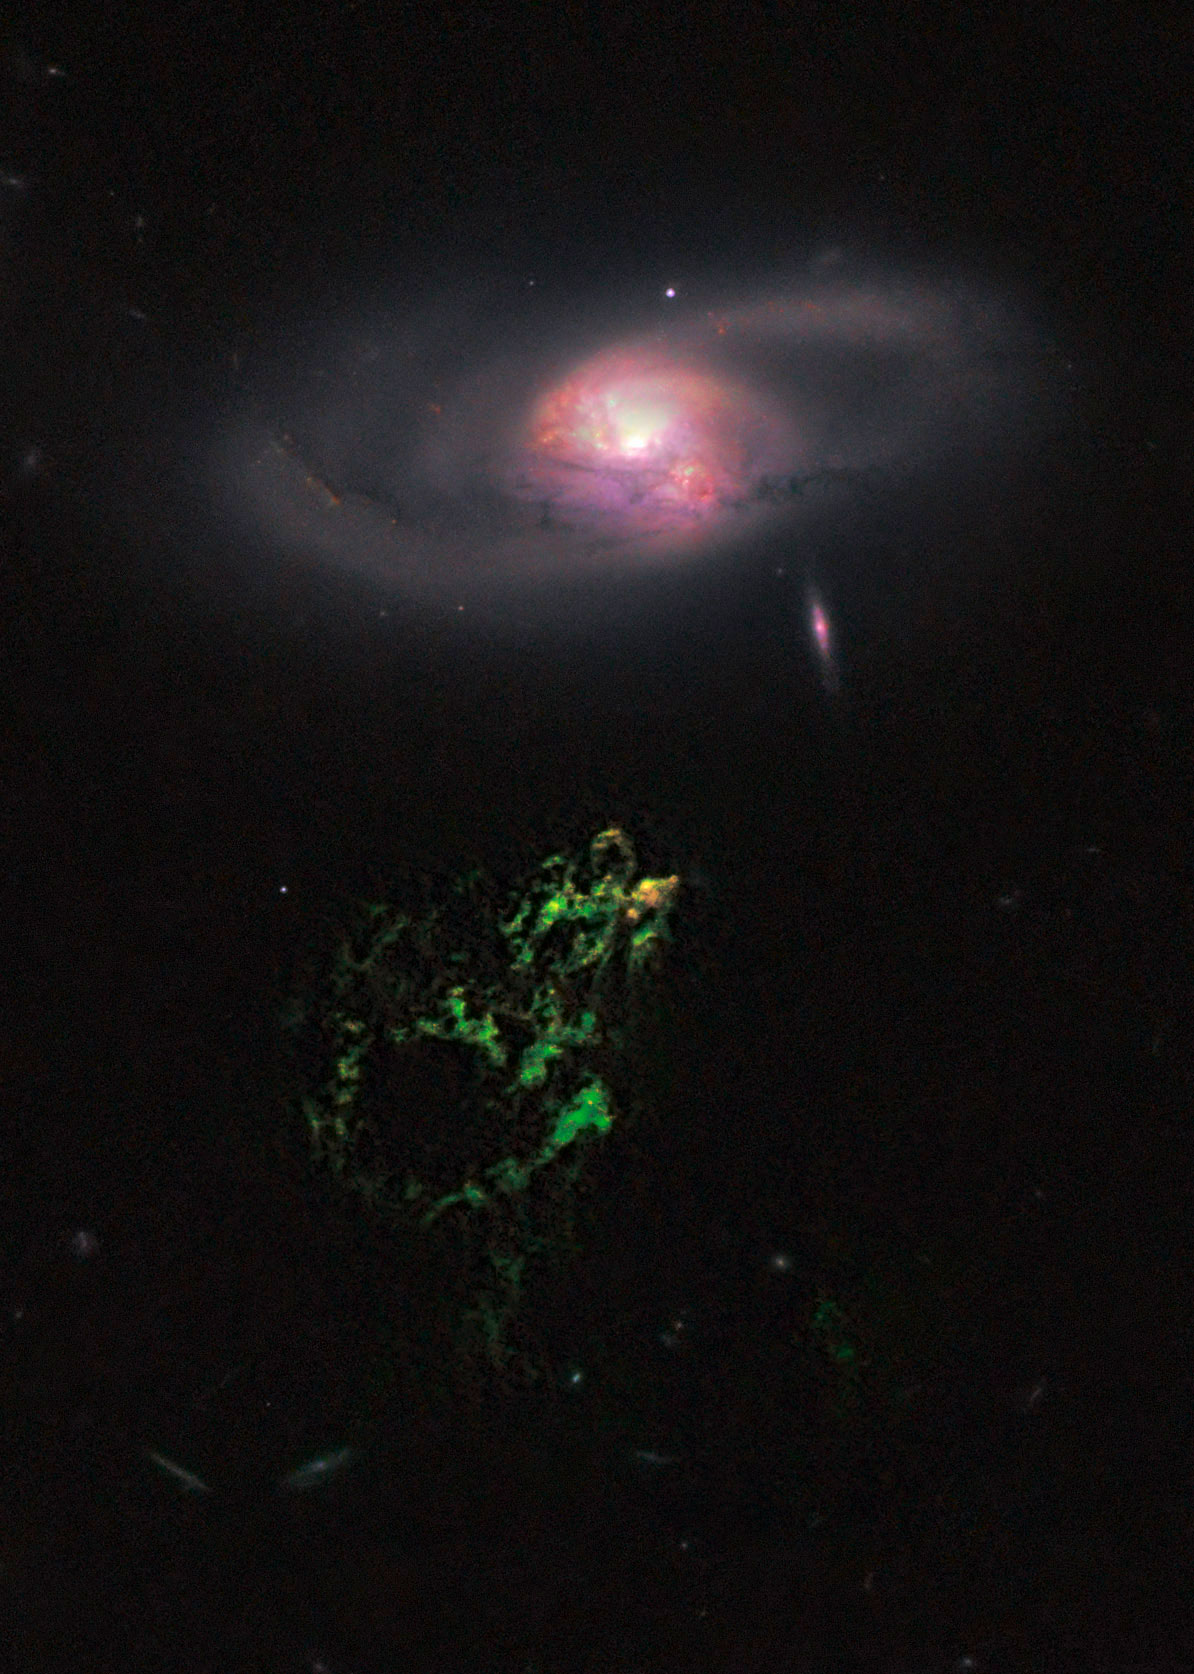 Image #7: A Zooite discovery and a mysterious object: Hanny's Voorwerp which can be seen below spiral galaxy IC2497. Credit: NASA/ESA/W. Keel/Galaxy Zoo Team/Hubble Space Telescope